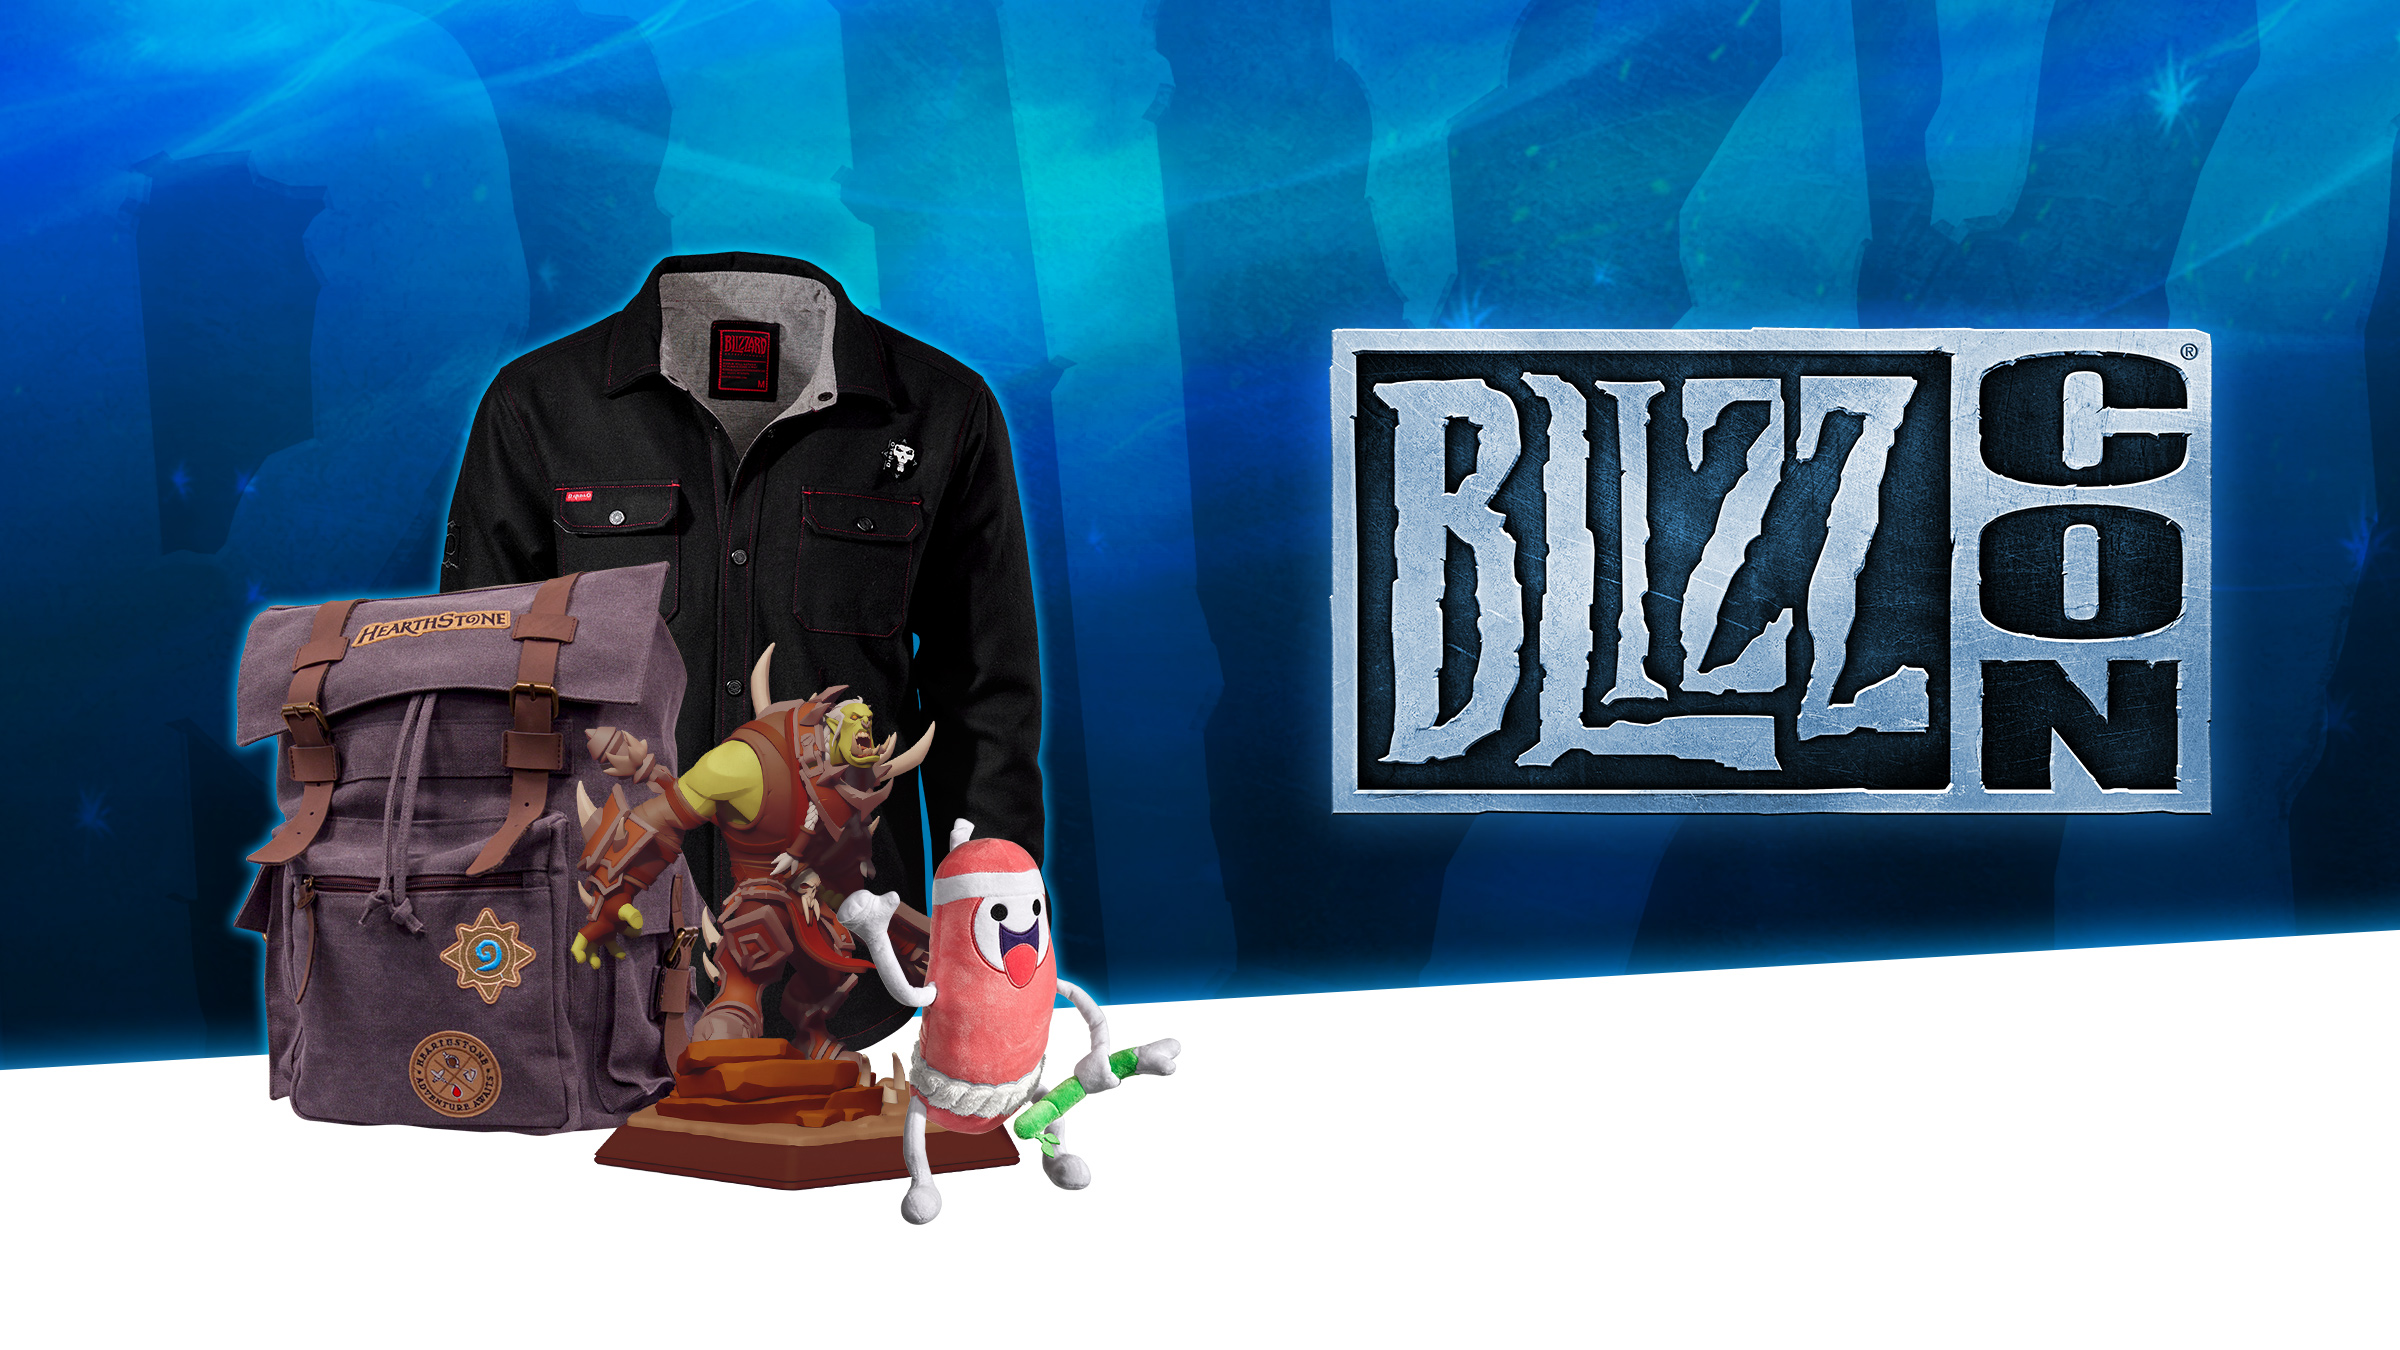 BlizzCon 2018 Online Merchandise Sale Early Access Begins!